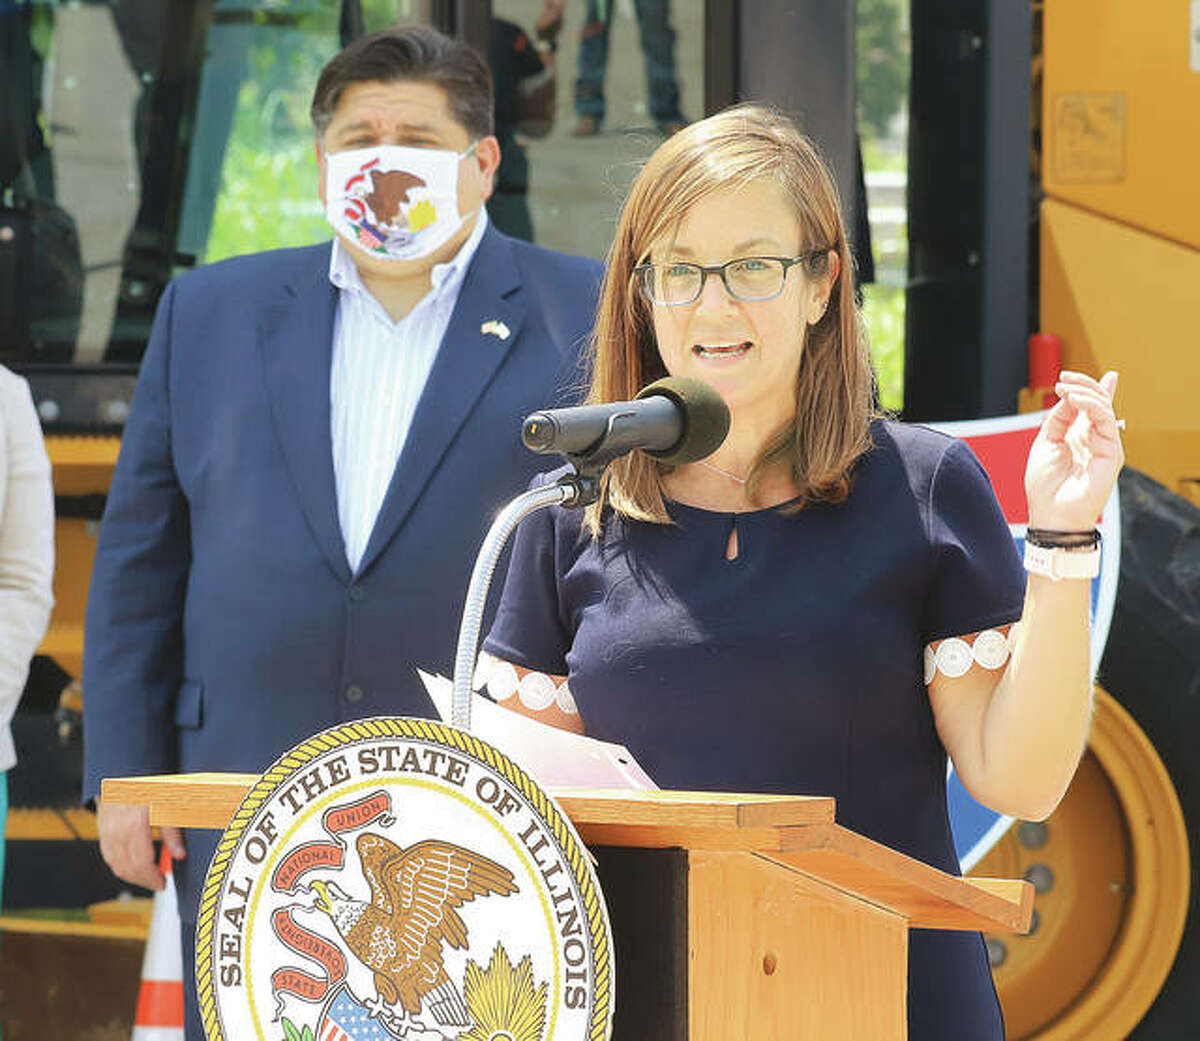 State Rep. Katie Stuart, D-Edwardsville, talks at the Collinsville announcement Tuesday by Gov. JB Pritzker, background, of the new $21.3 billion, multi-year, road and bridge improvement plan.